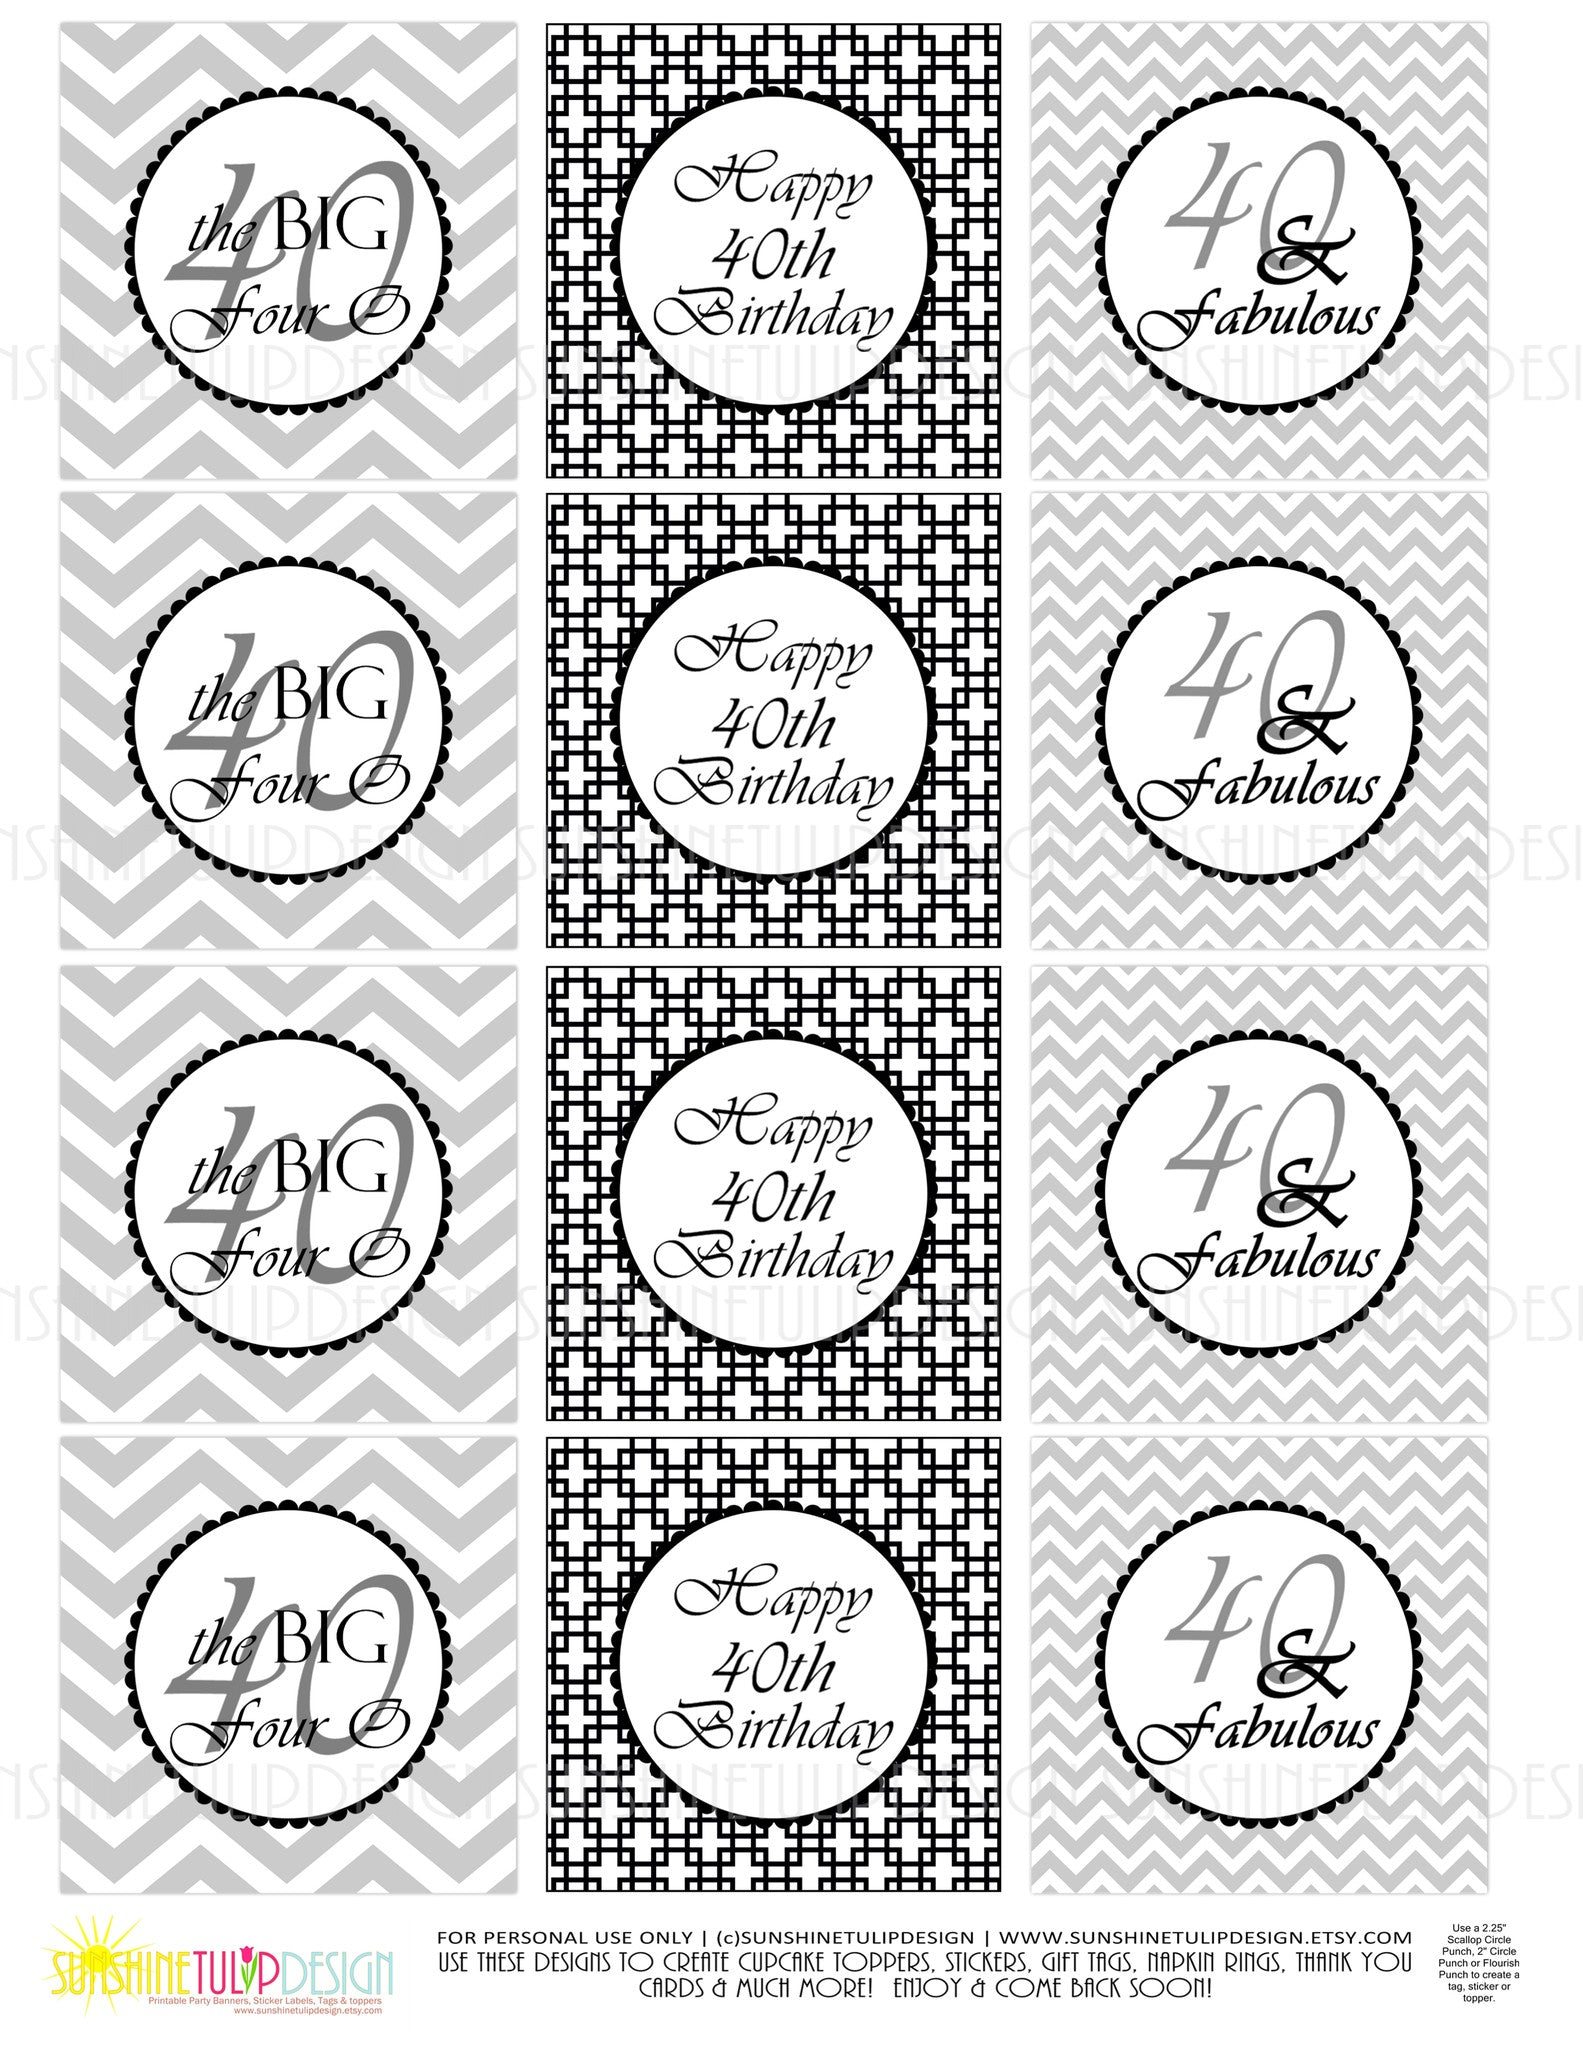 photograph relating to Printable Sticker Labels titled Printable 40th Birthday Black Grey Birthday Cupcake Toppers, Sticker Labels Occasion Choose Tags